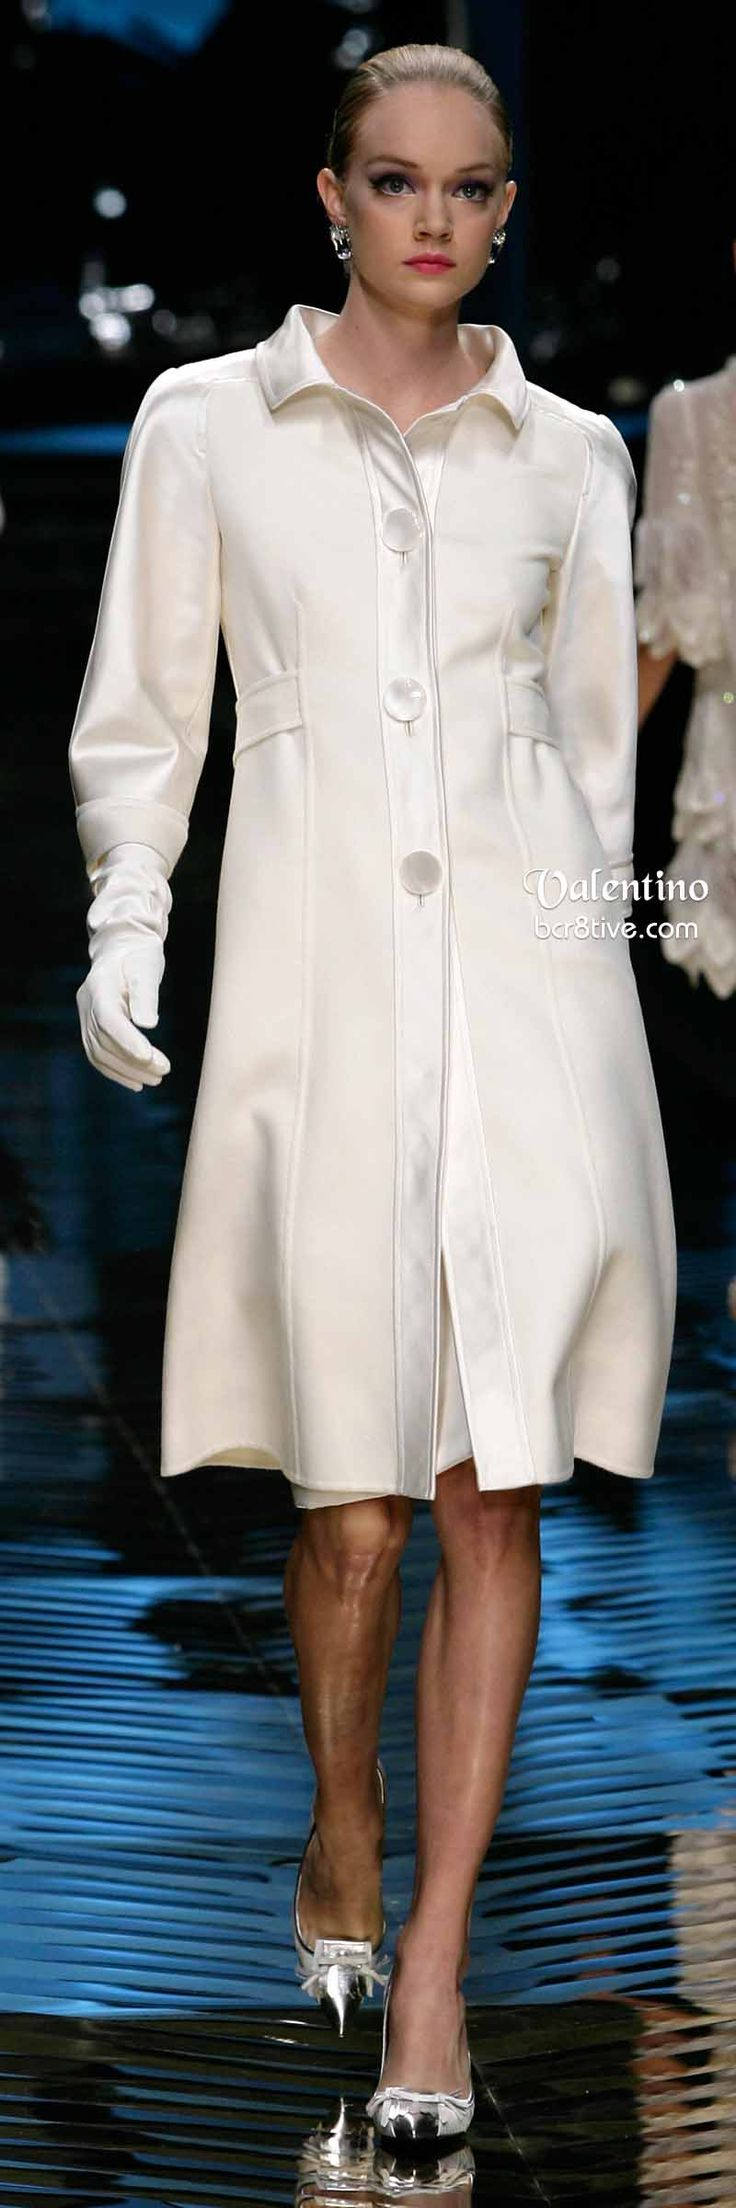 Valentino White Coat Dress http://bcr8tive.com/farewell-valentino/